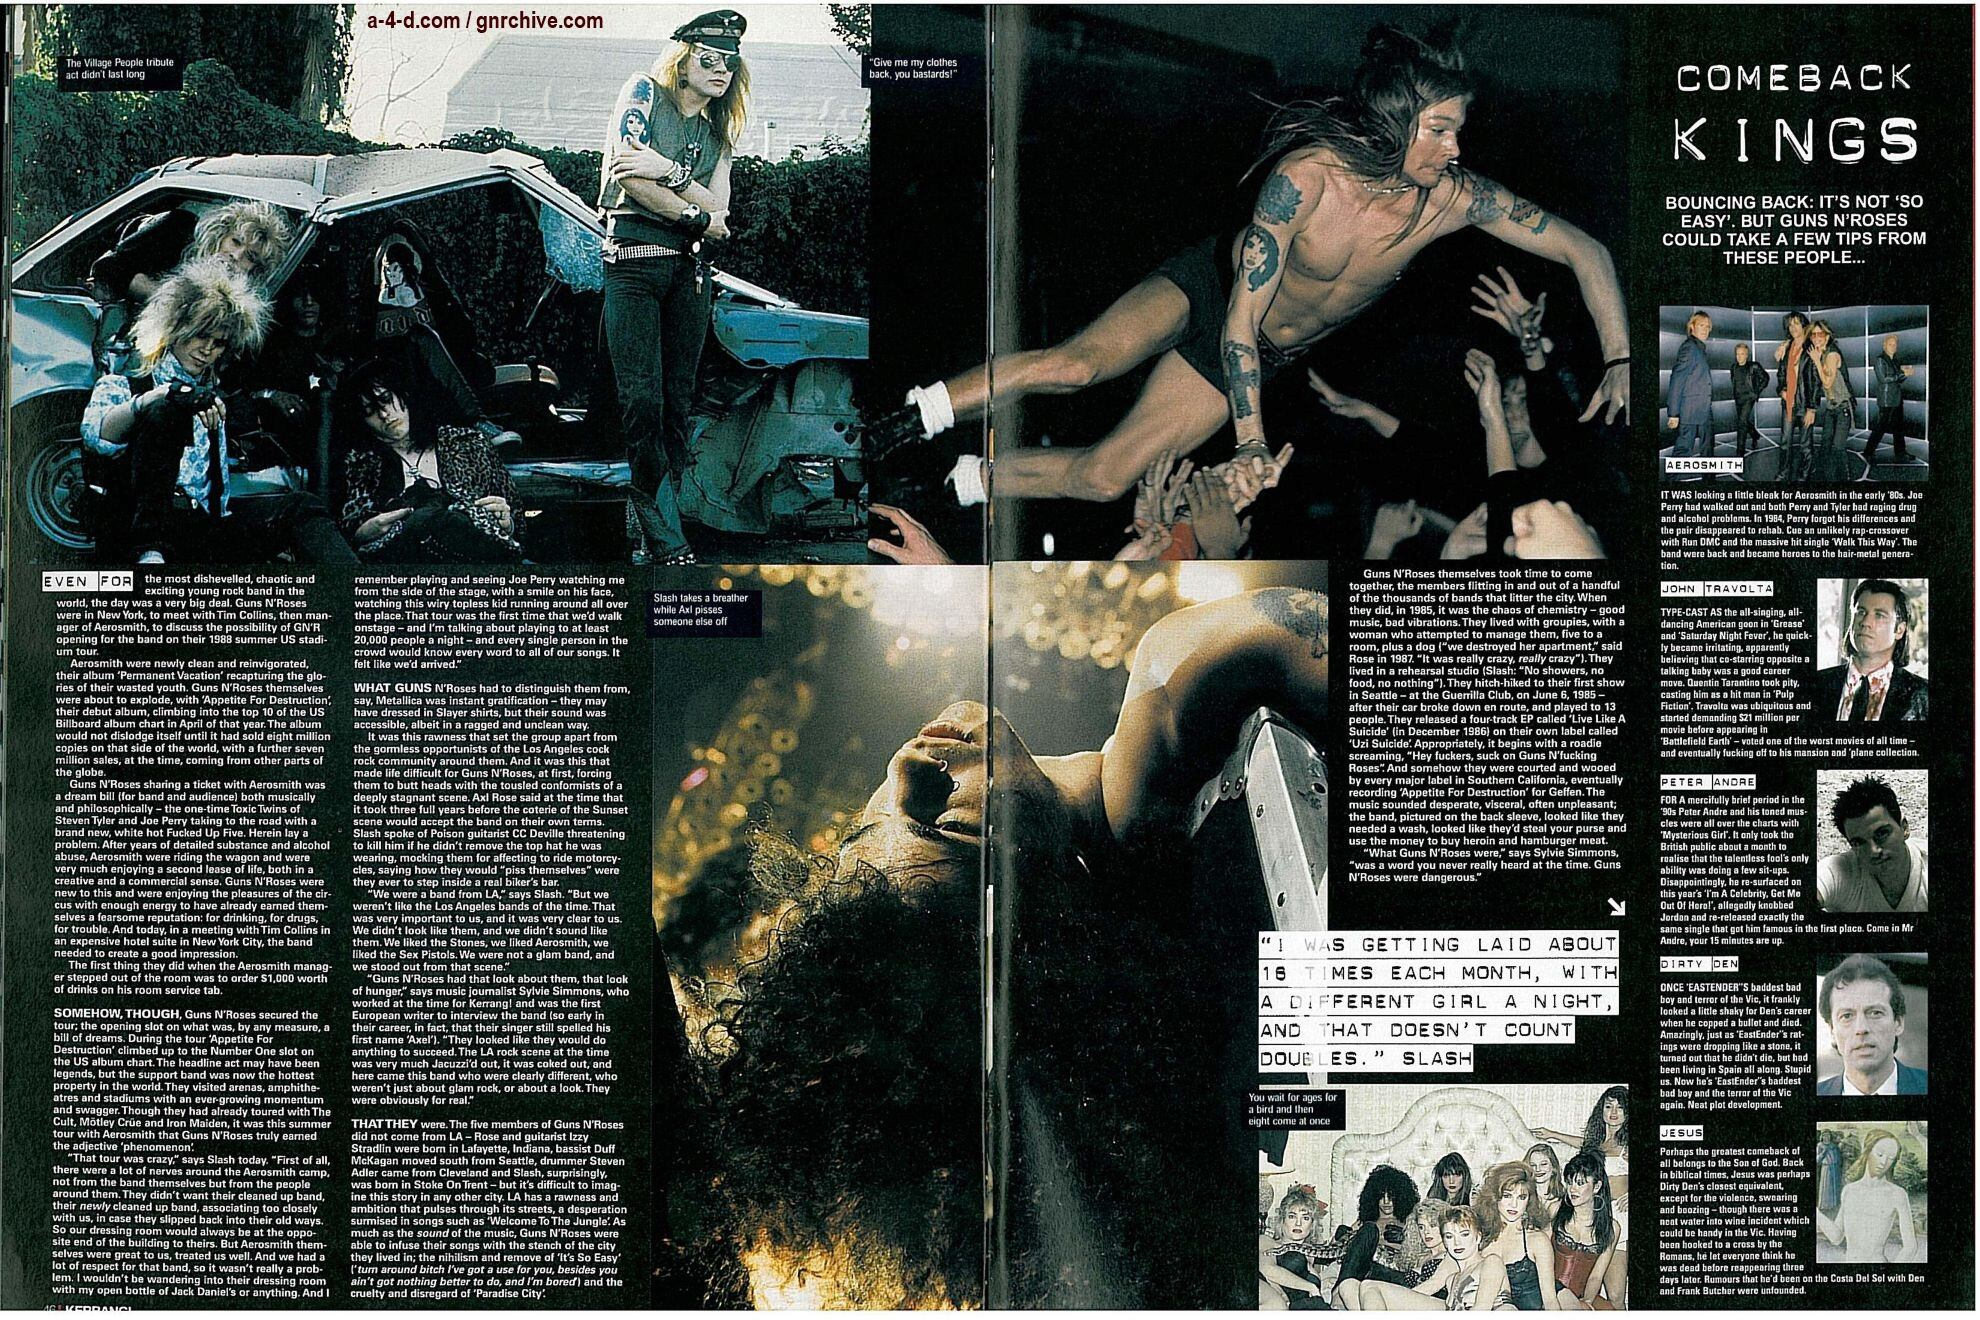 2004.03.20 - Kerrang! - Welcome To The Jungle 2004-045